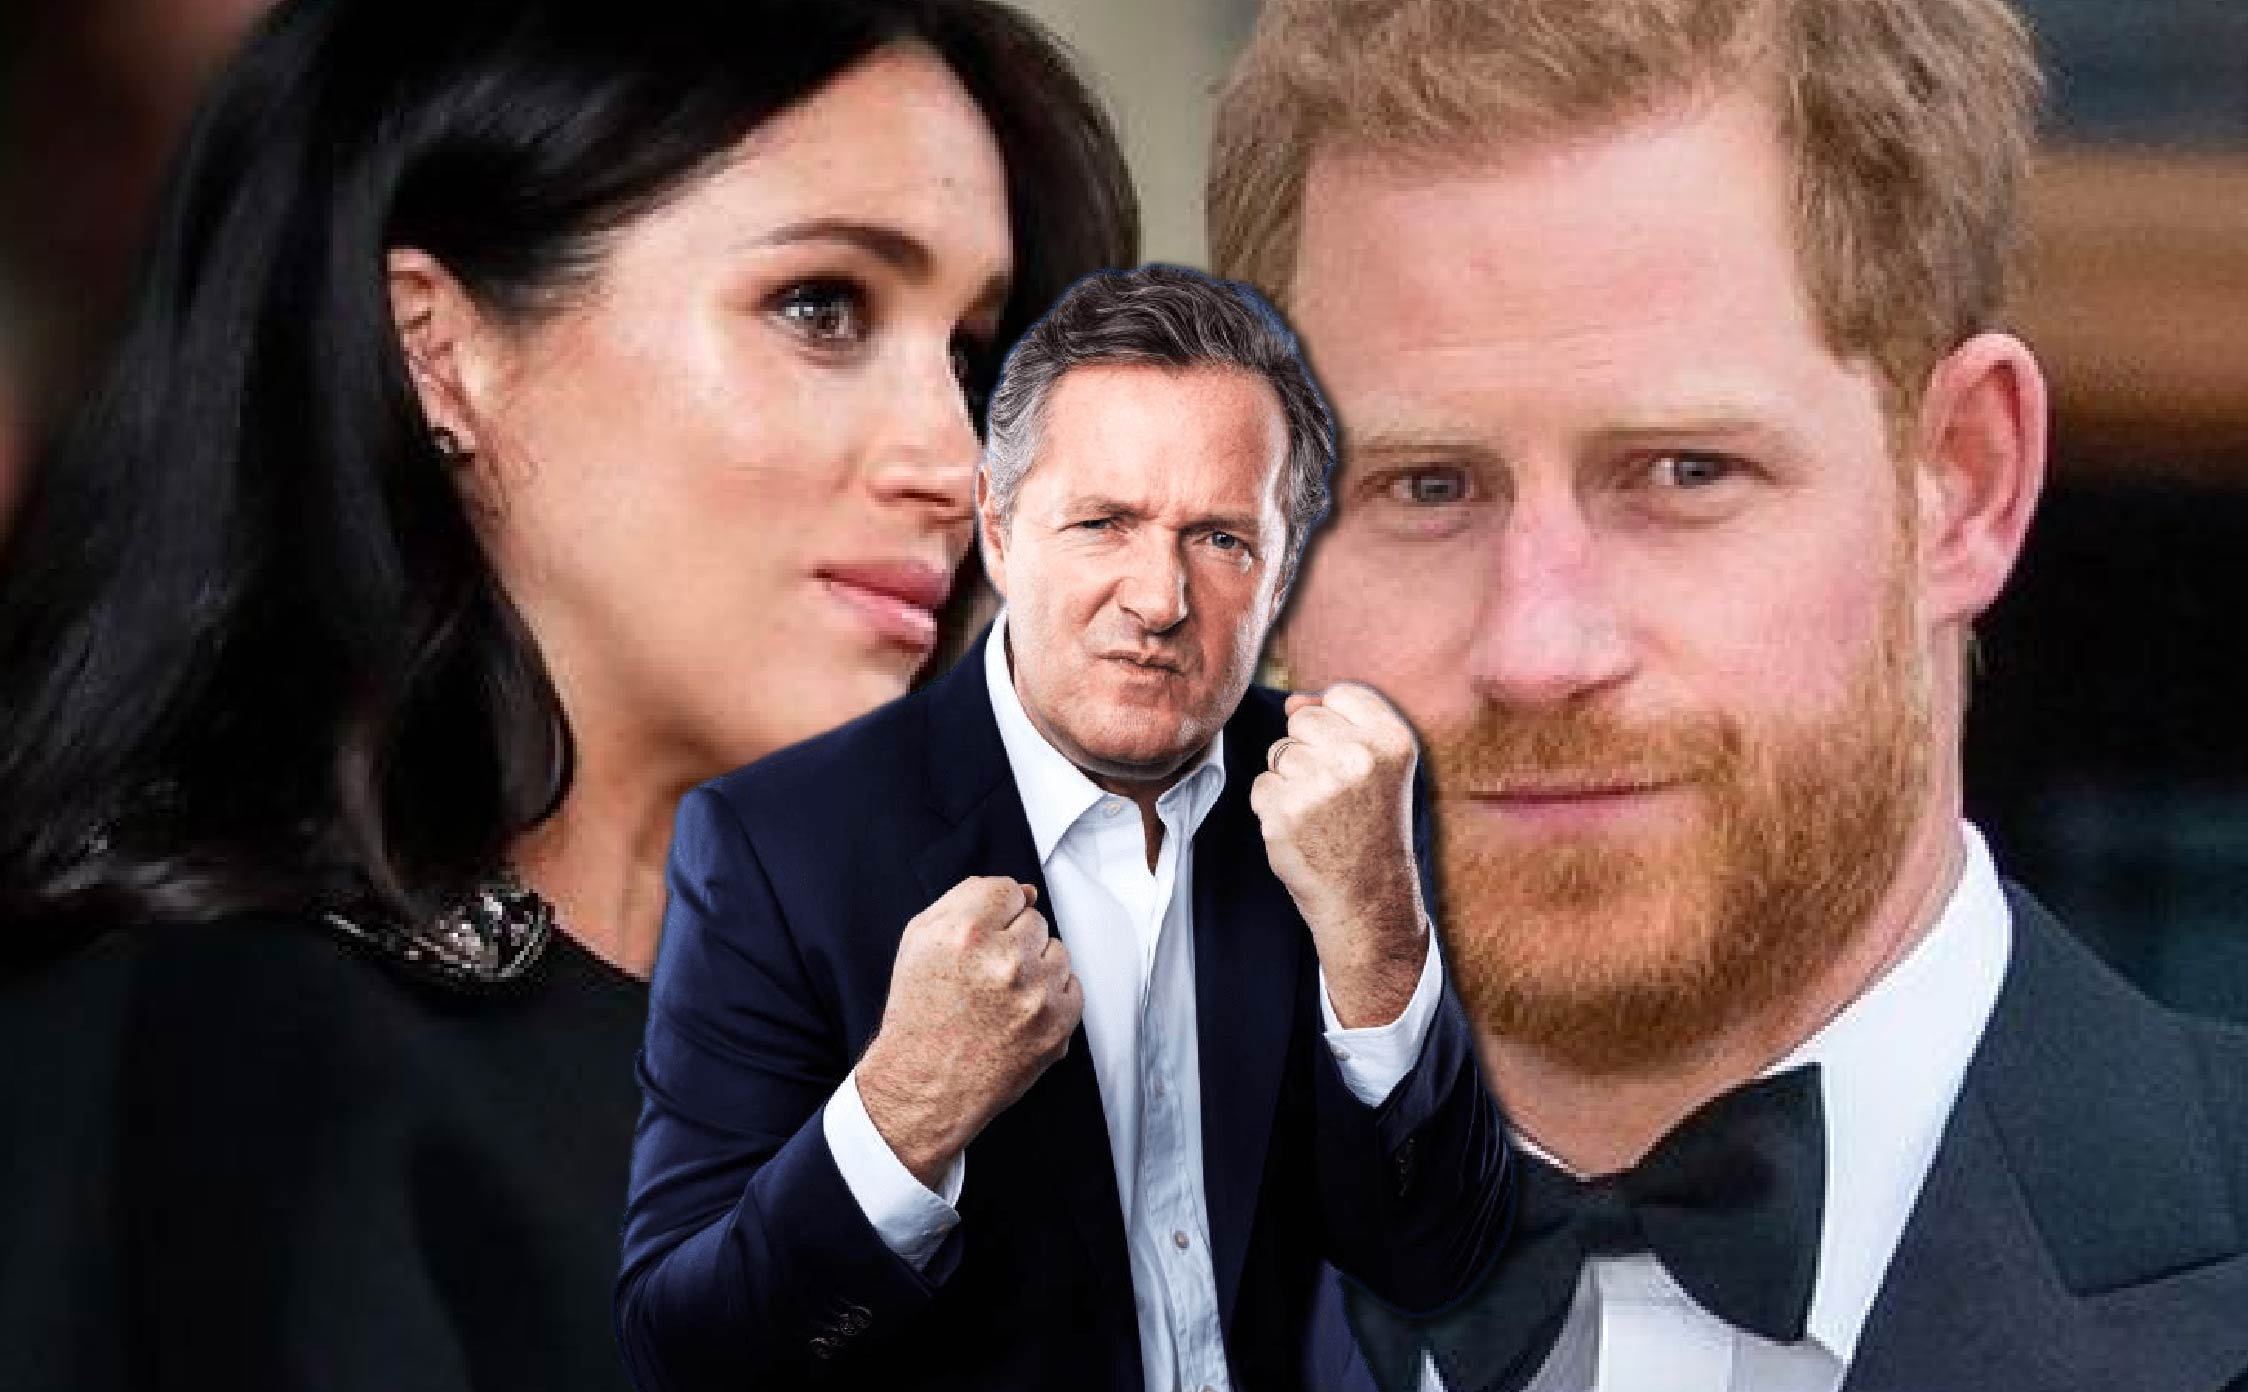 [VIDEO] Piers Morgan Drops Major Bomb Involving Palace...and Harry and Meghan Will Be Livid